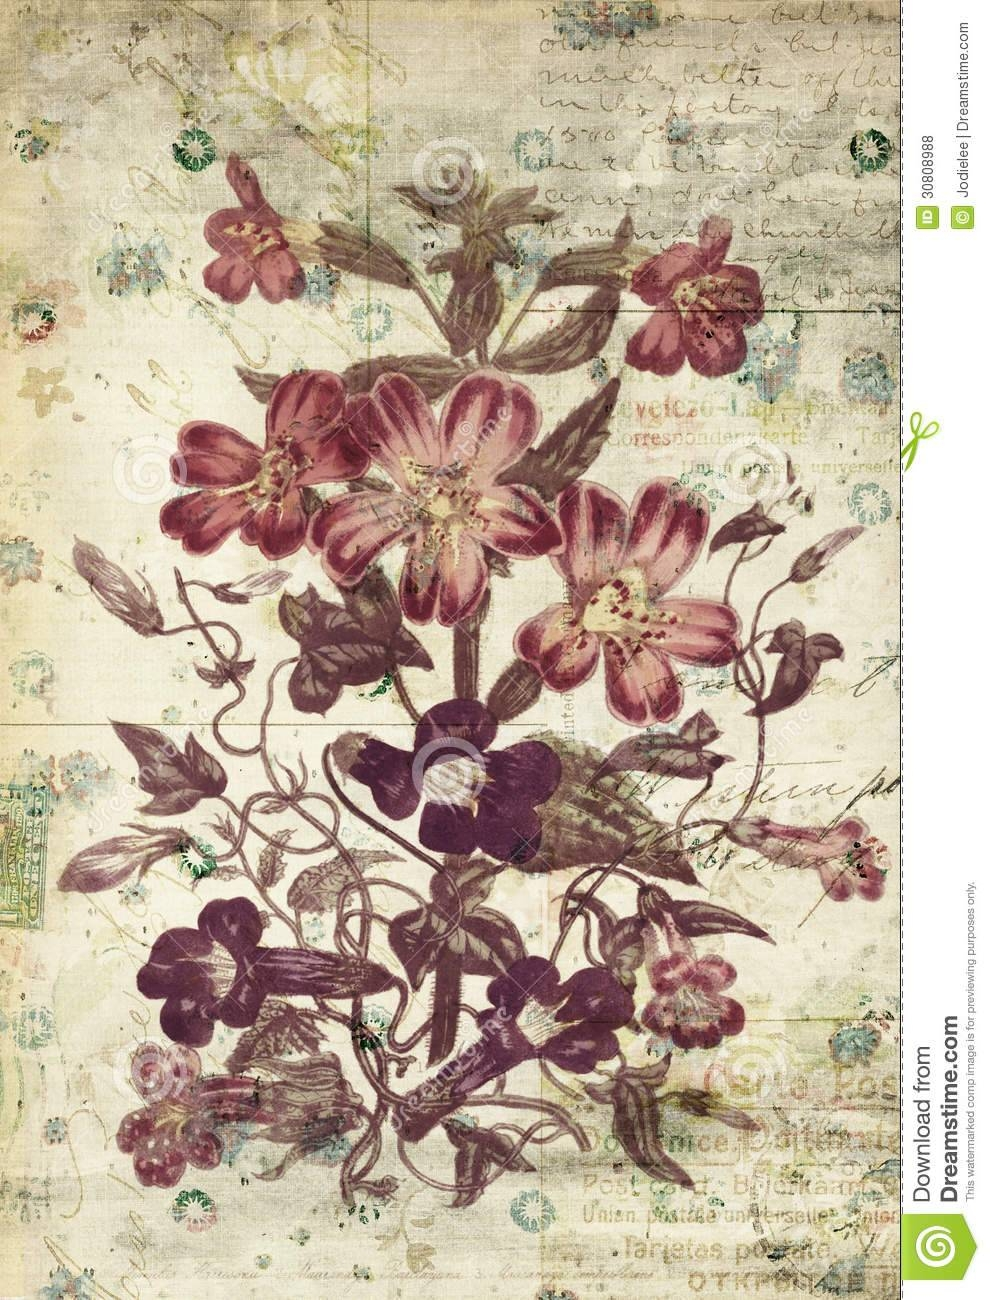 Flowers Botanical Vintage Style Wall Art With Textured Background Inside 2017 Vintage Style Wall Art (View 5 of 20)